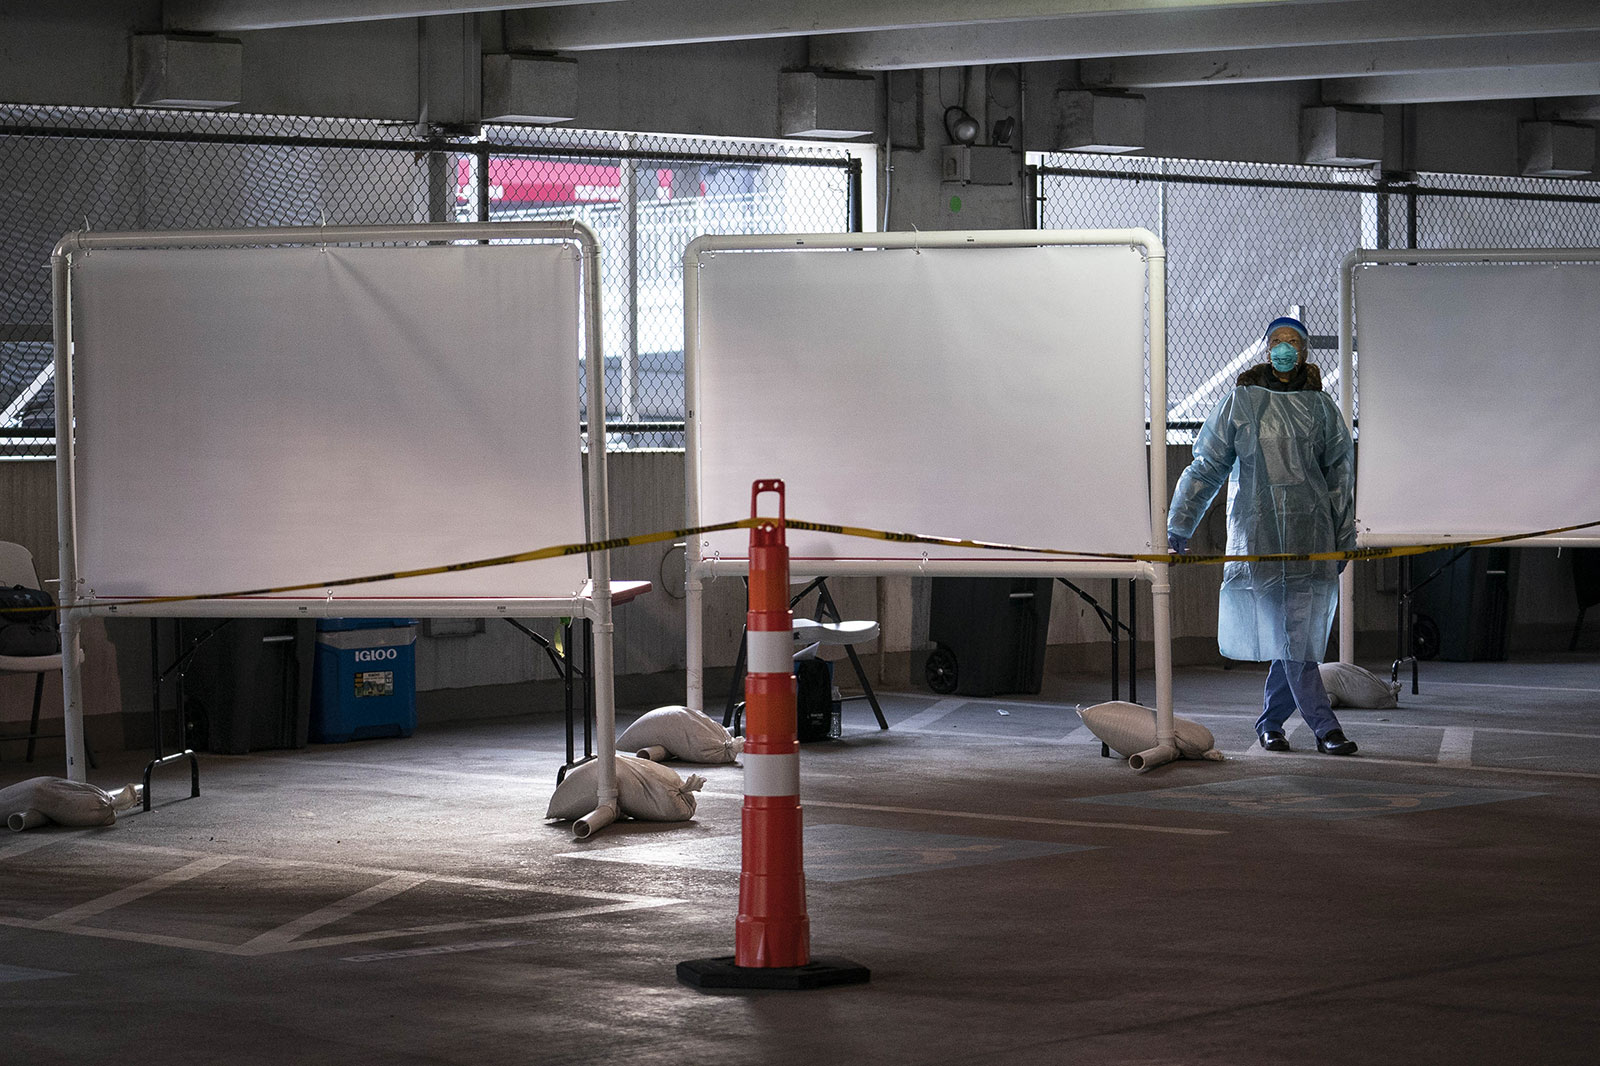 A health care worker waits to administer Covid-19 tests at a testing site in Washington, DC, on November 24.